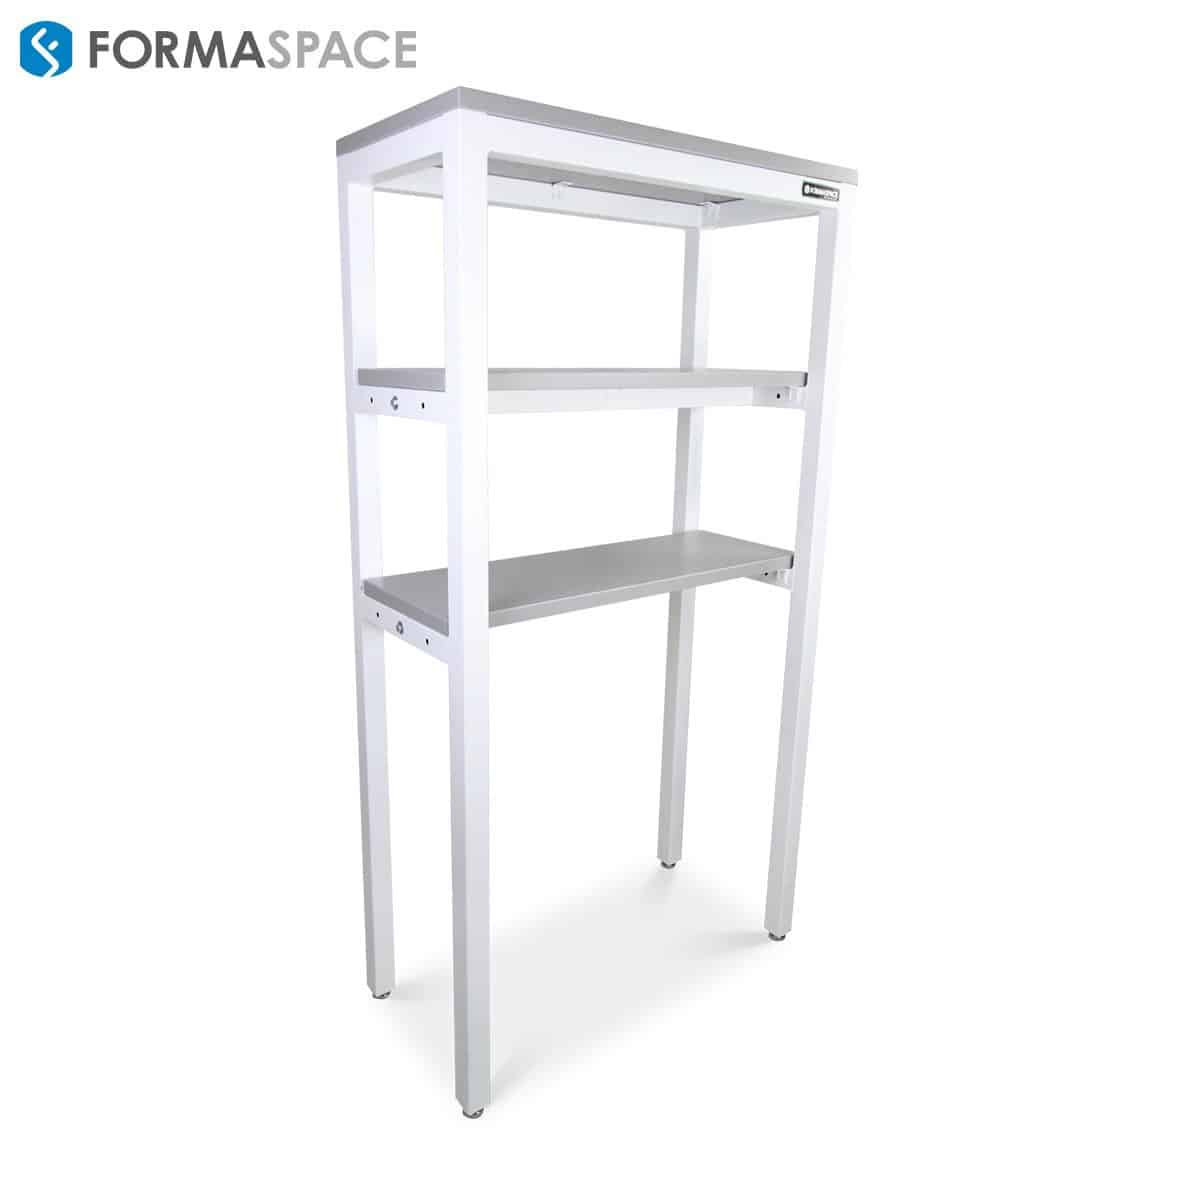 durable shelving system for a retail store